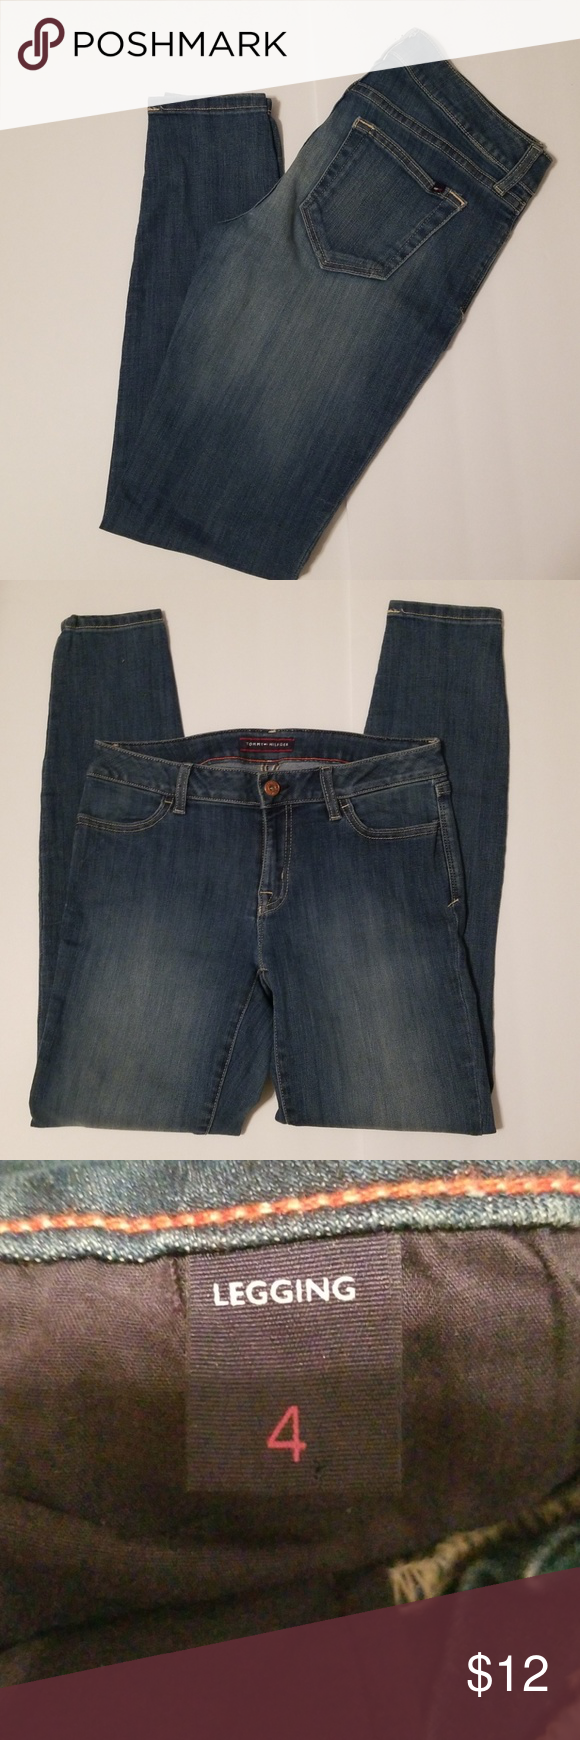 cf6e520d Womens Tommy Hilfiger Jeans No signs of wear, the care tag has been cut out Tommy  Hilfiger Jeans Skinny